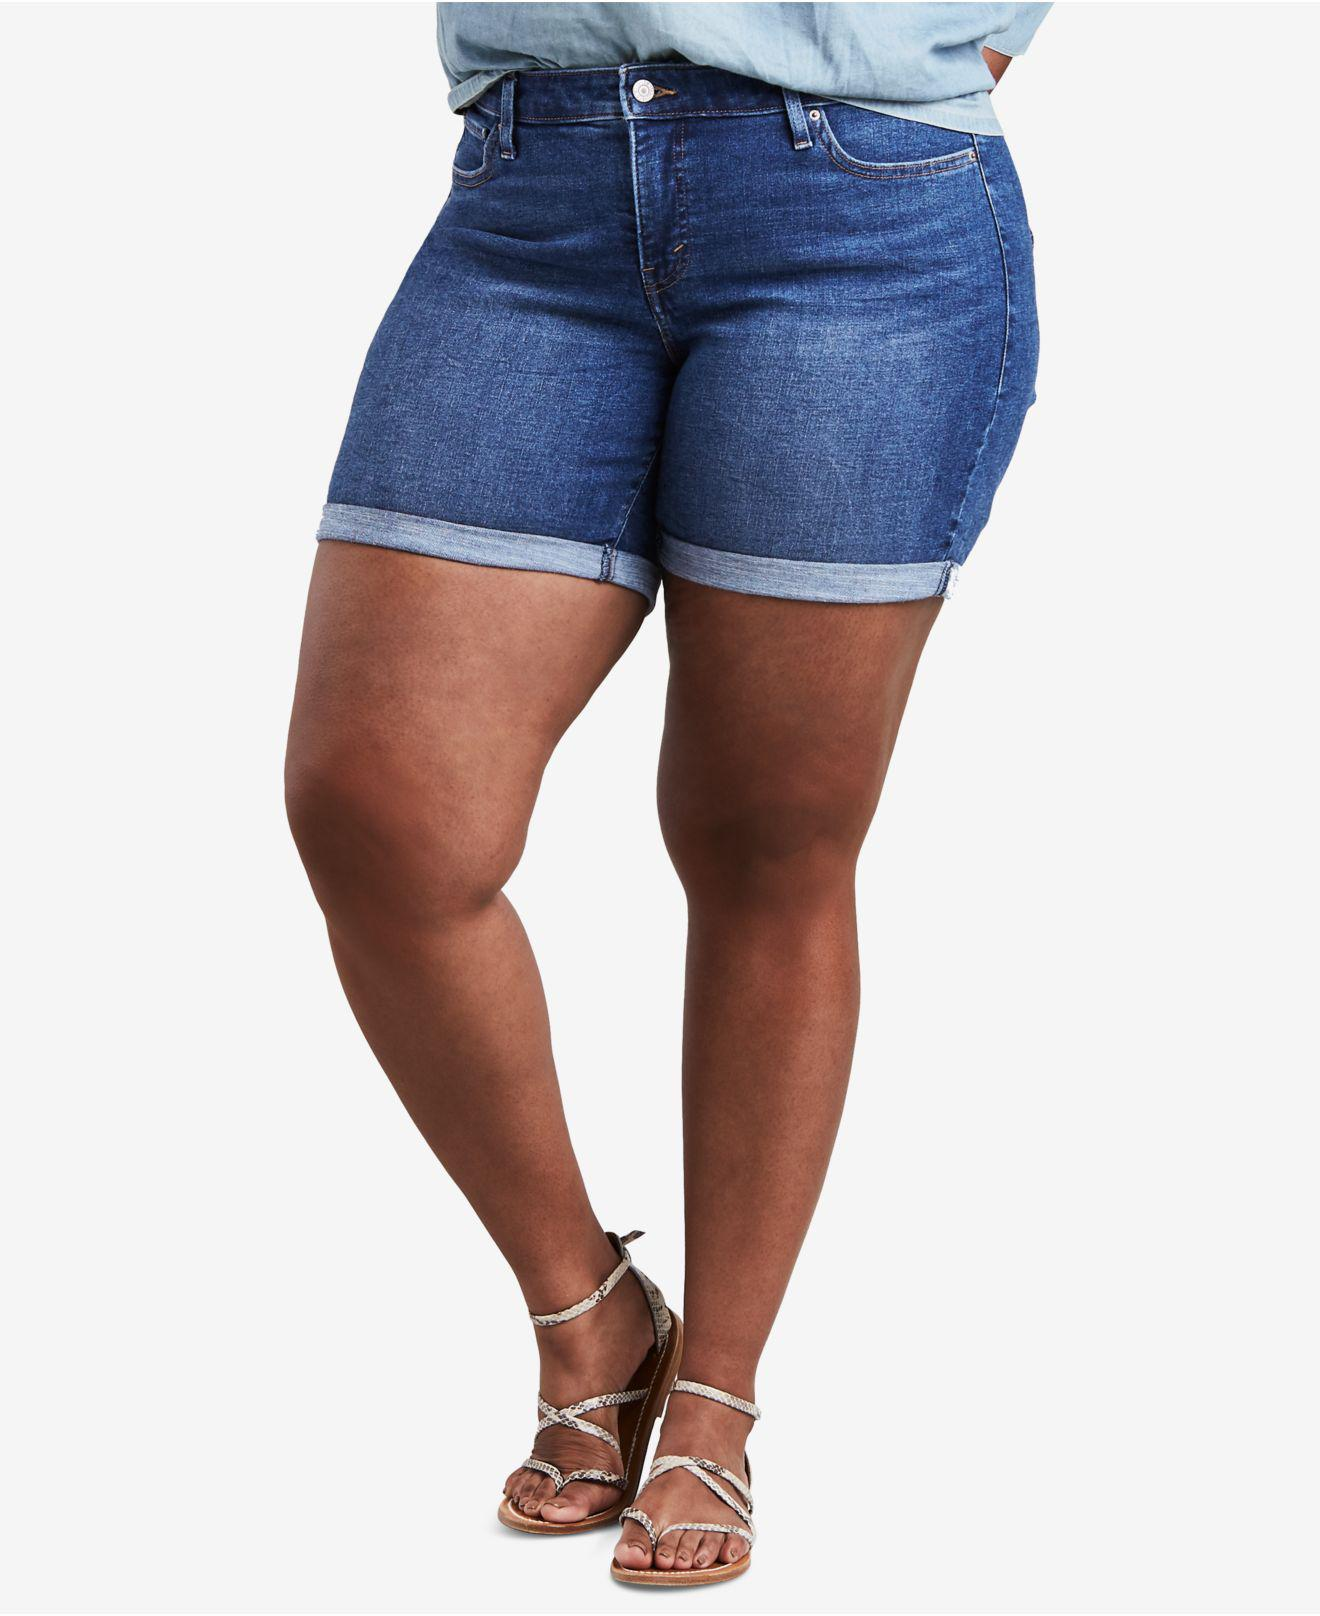 Sweatwater Womens Jeans Casual High Rise Cut Off Summer Hole Denim Shorts